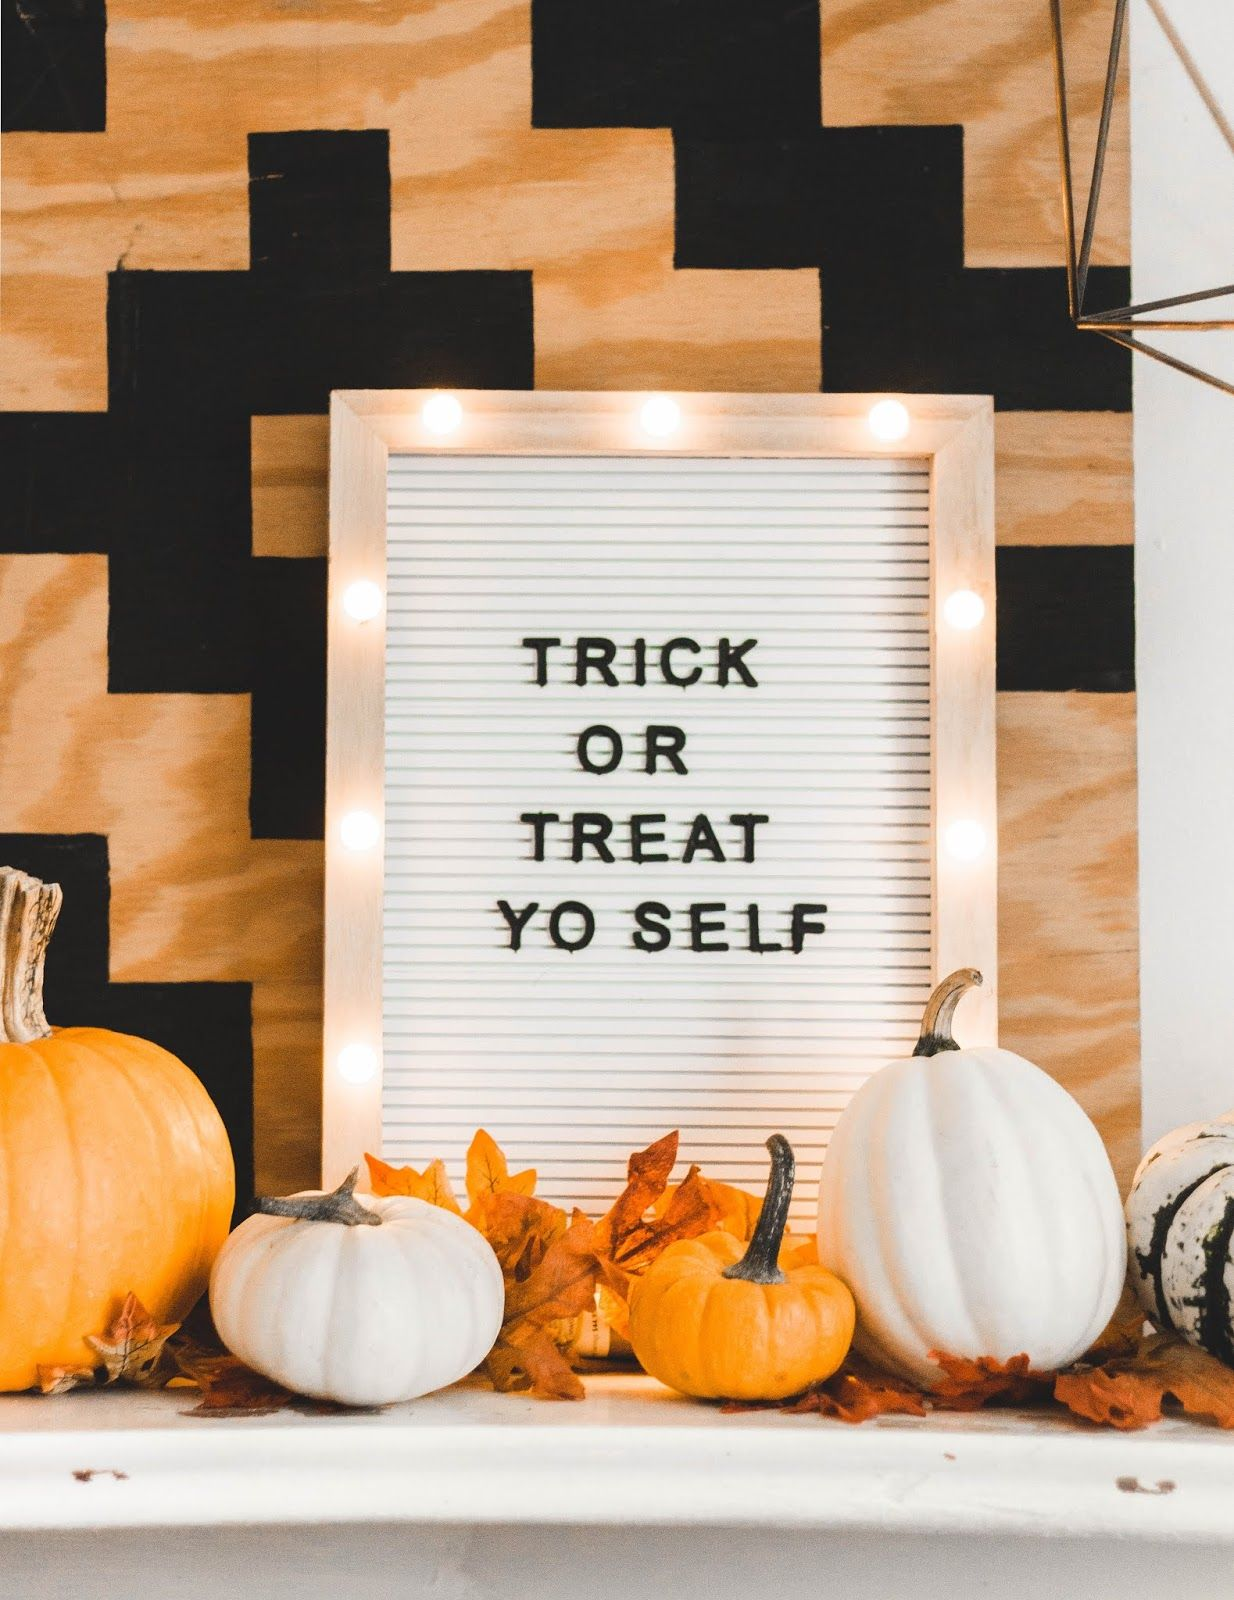 10 Clever Fall Sayings for Your Letter Board + A Free Fall Printable is part of Autumn quotes, Letter board, Fall printables, Message board quotes, Funny fall quotes, Lettering - fall, printable, free, fall sayings, letter board, letterboard, fall decor, fall decor inspiration, fall decor inspo, fall fireplace,